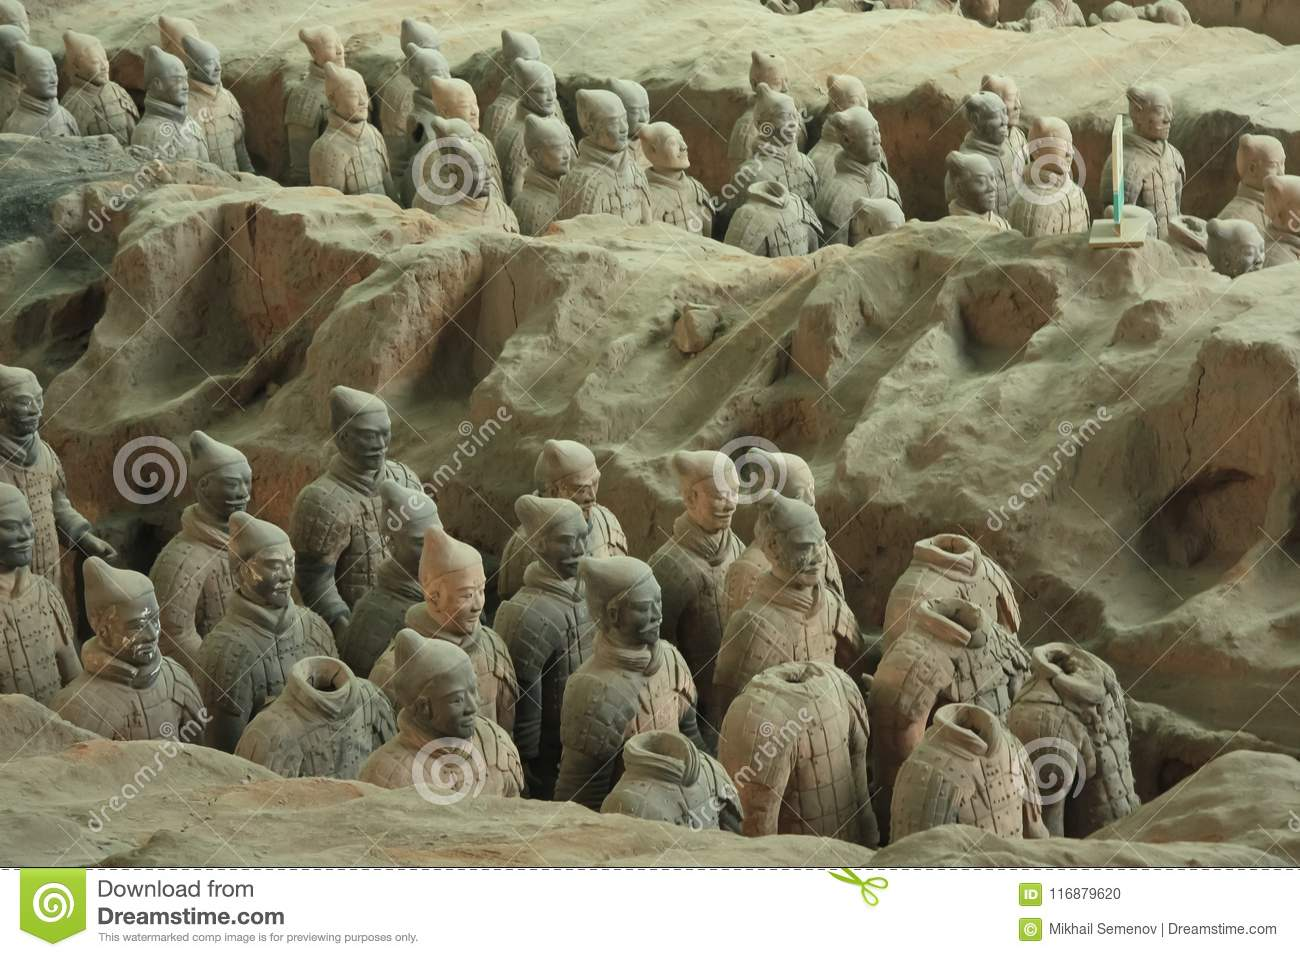 The terracotta army is a figure of ancient